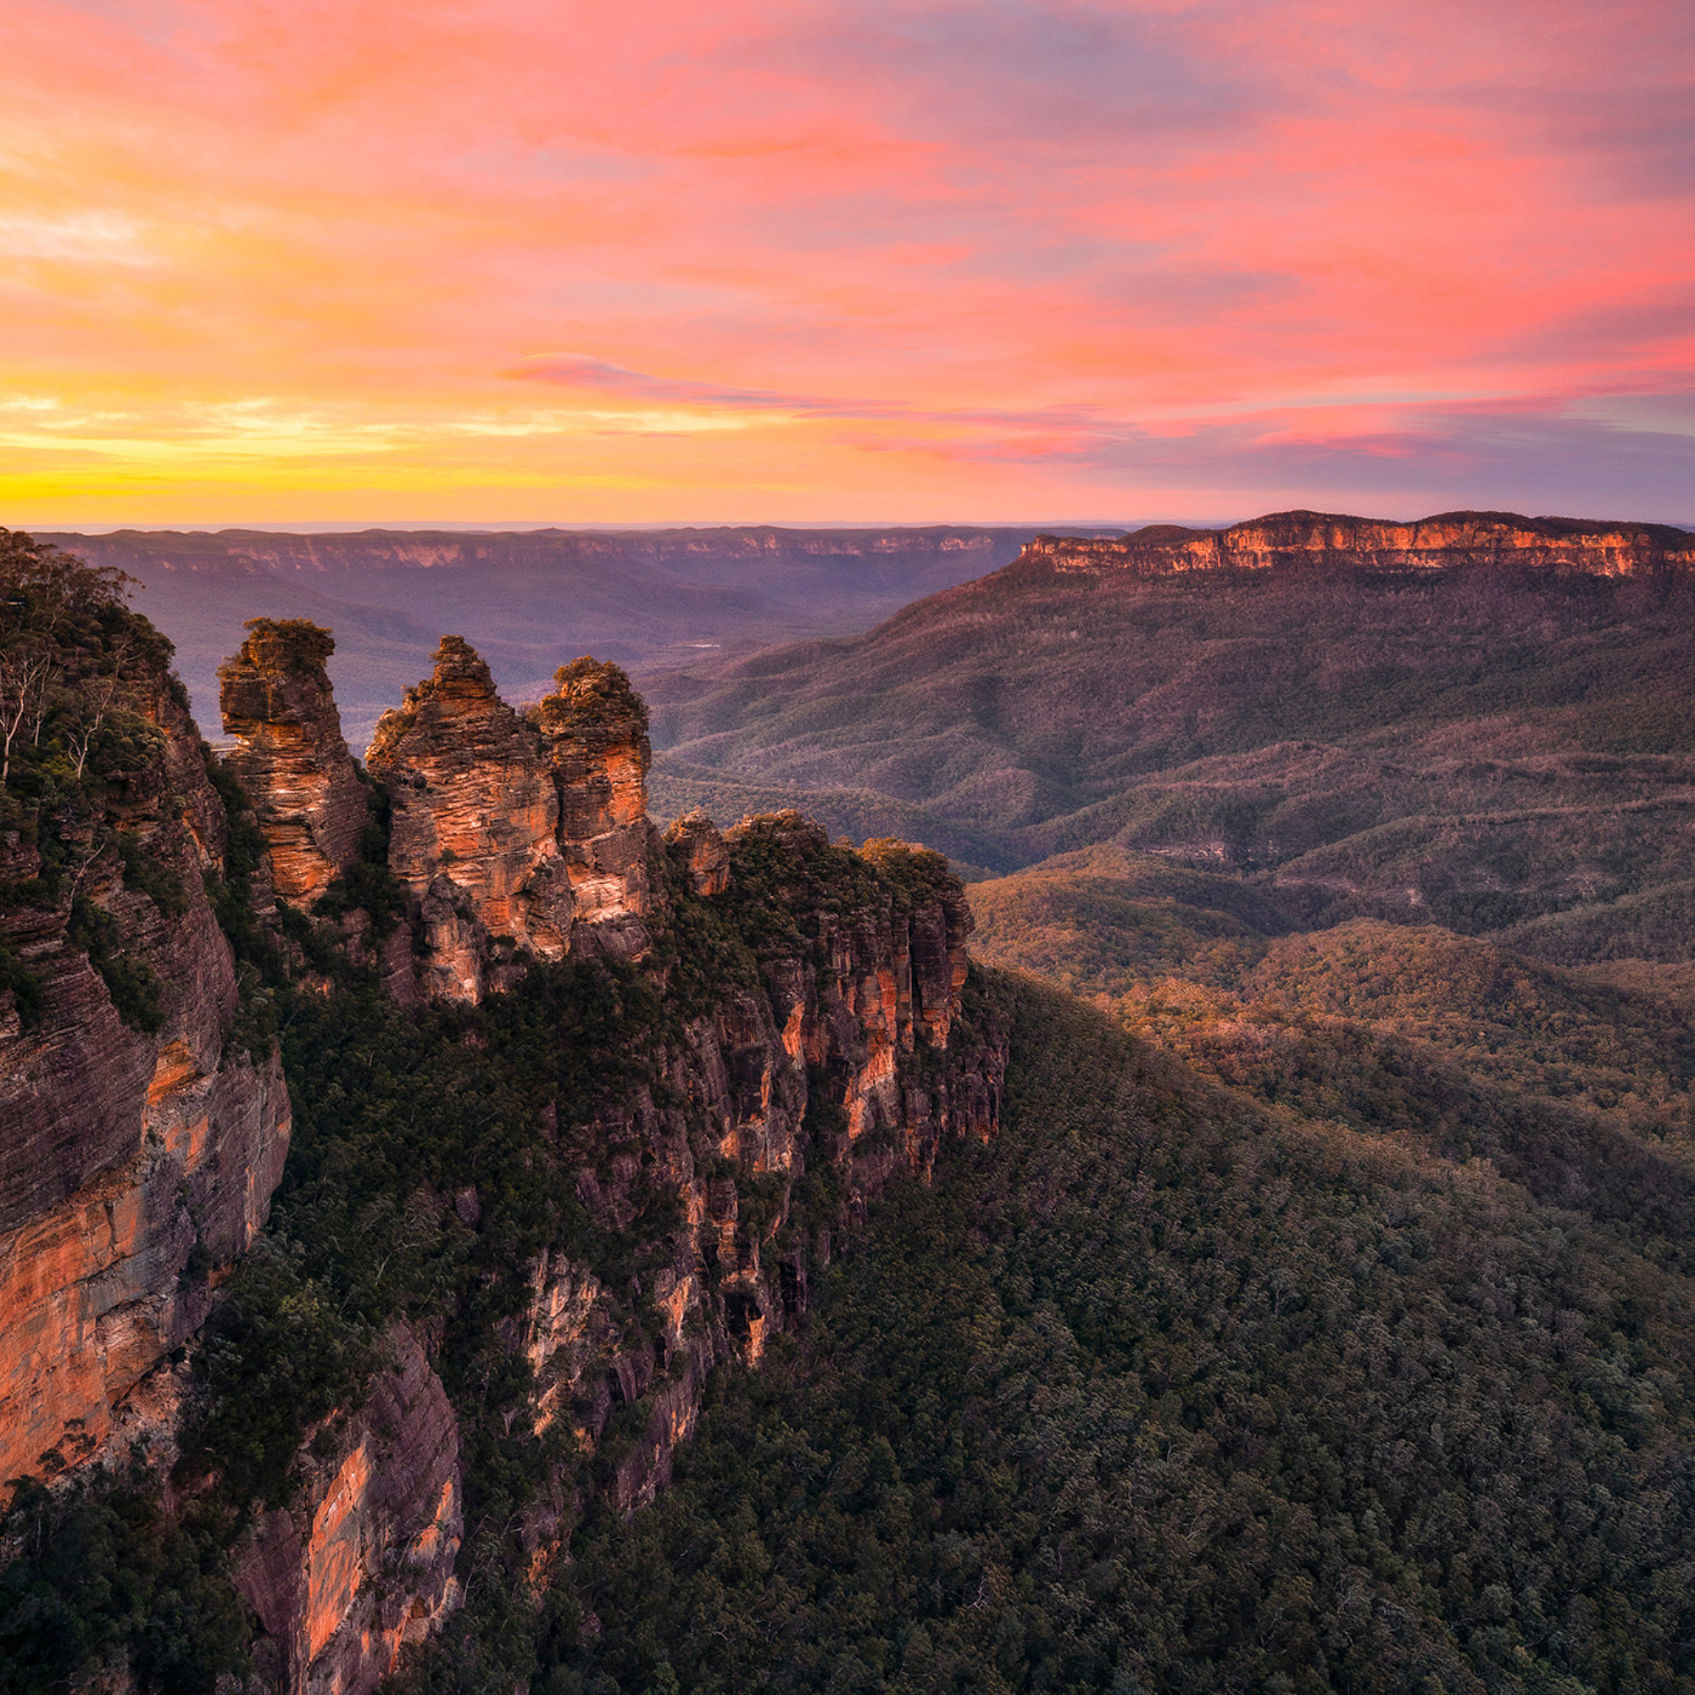 The Blue Mountains in Australia